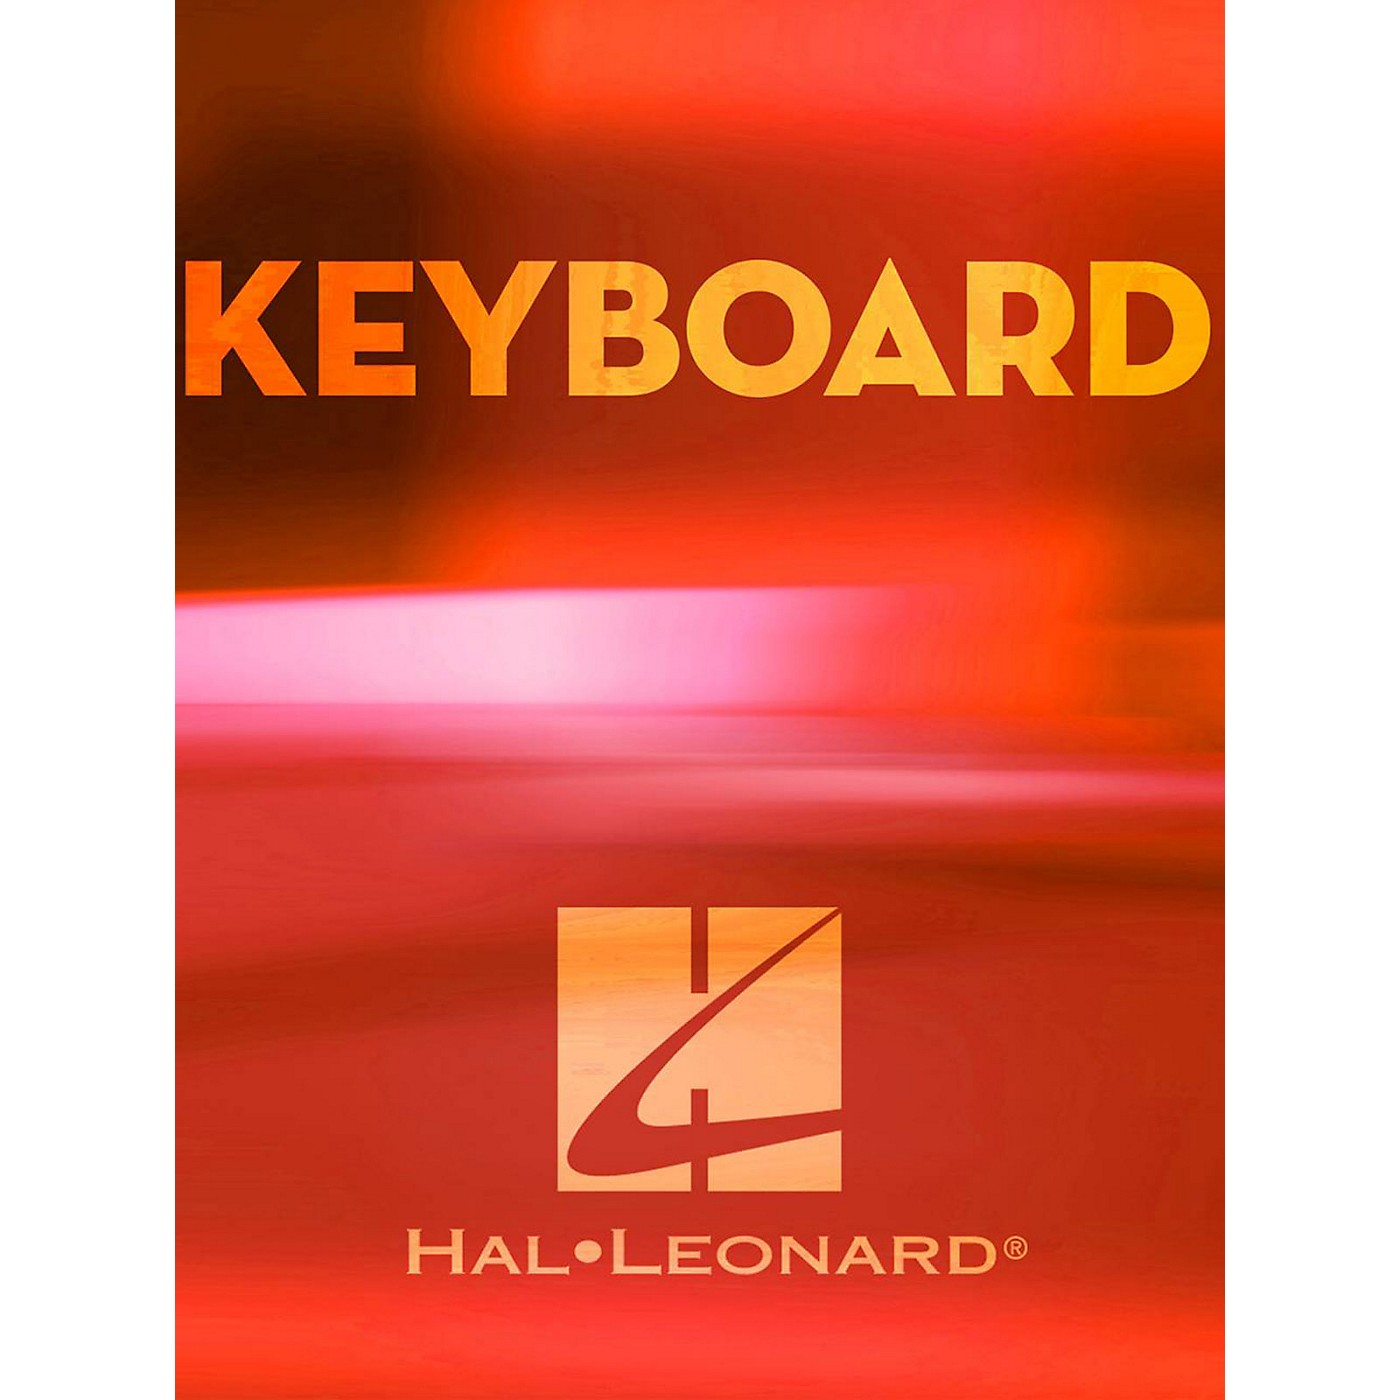 Hal Leonard Wings - At the Speed of Sound Piano/Vocal/Guitar Artist Songbook Series thumbnail